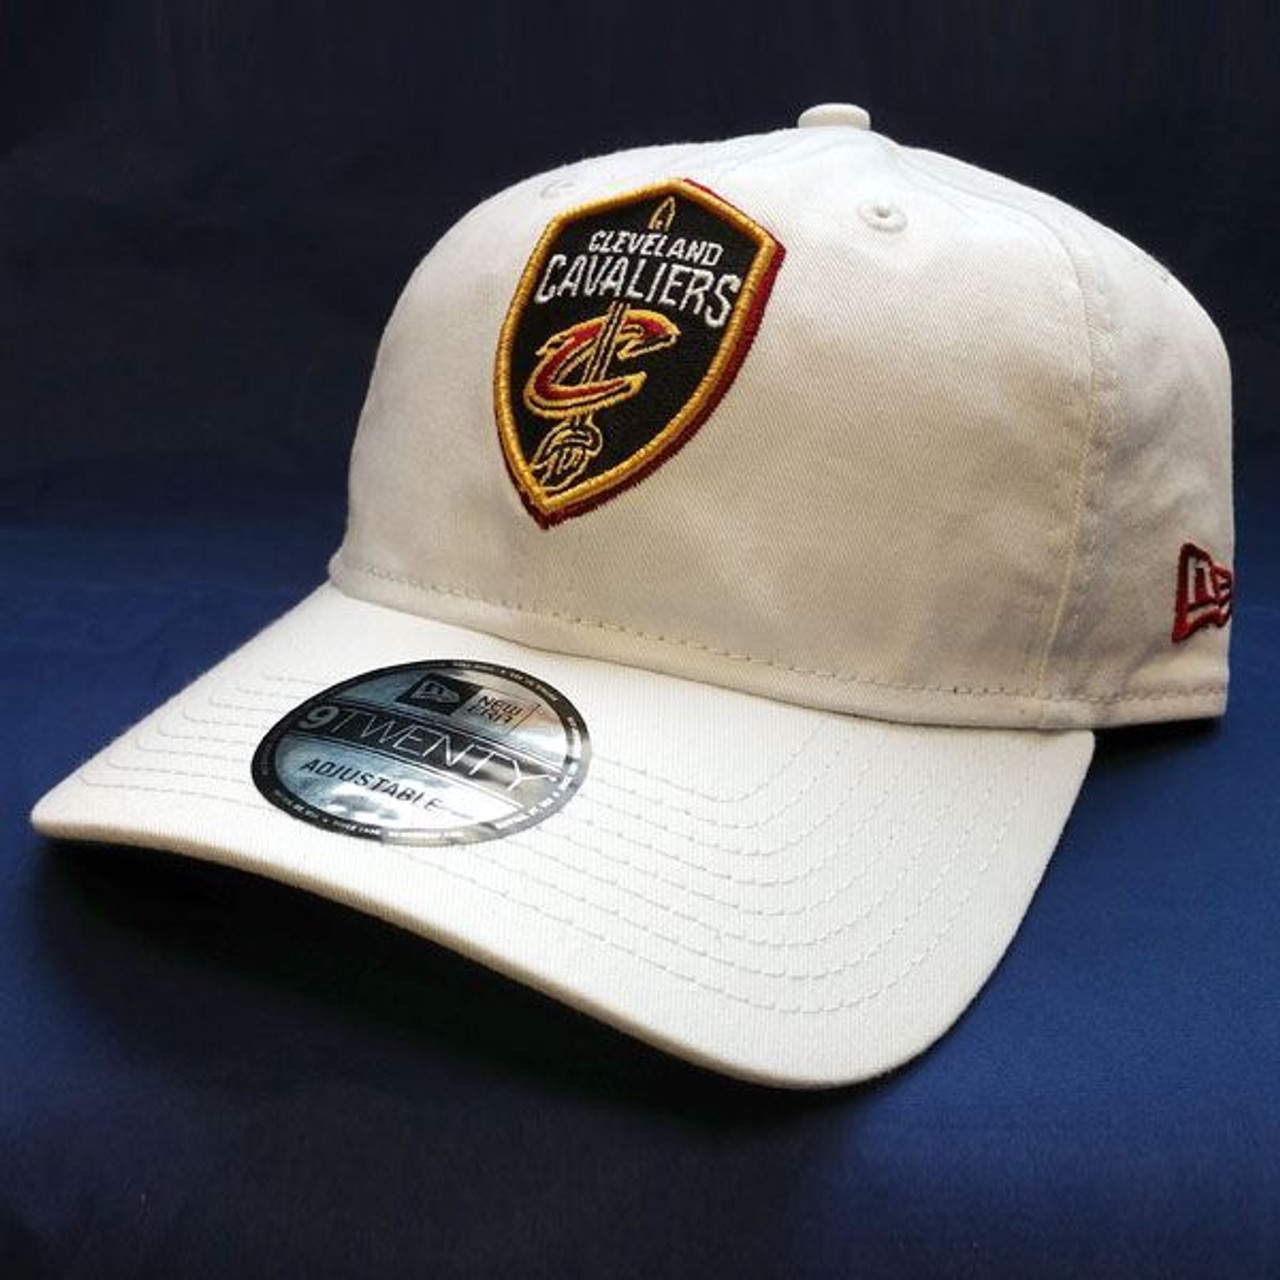 70fc42b66992e Global Shield Classic Adjustable Cap - Cleveland Cavaliers